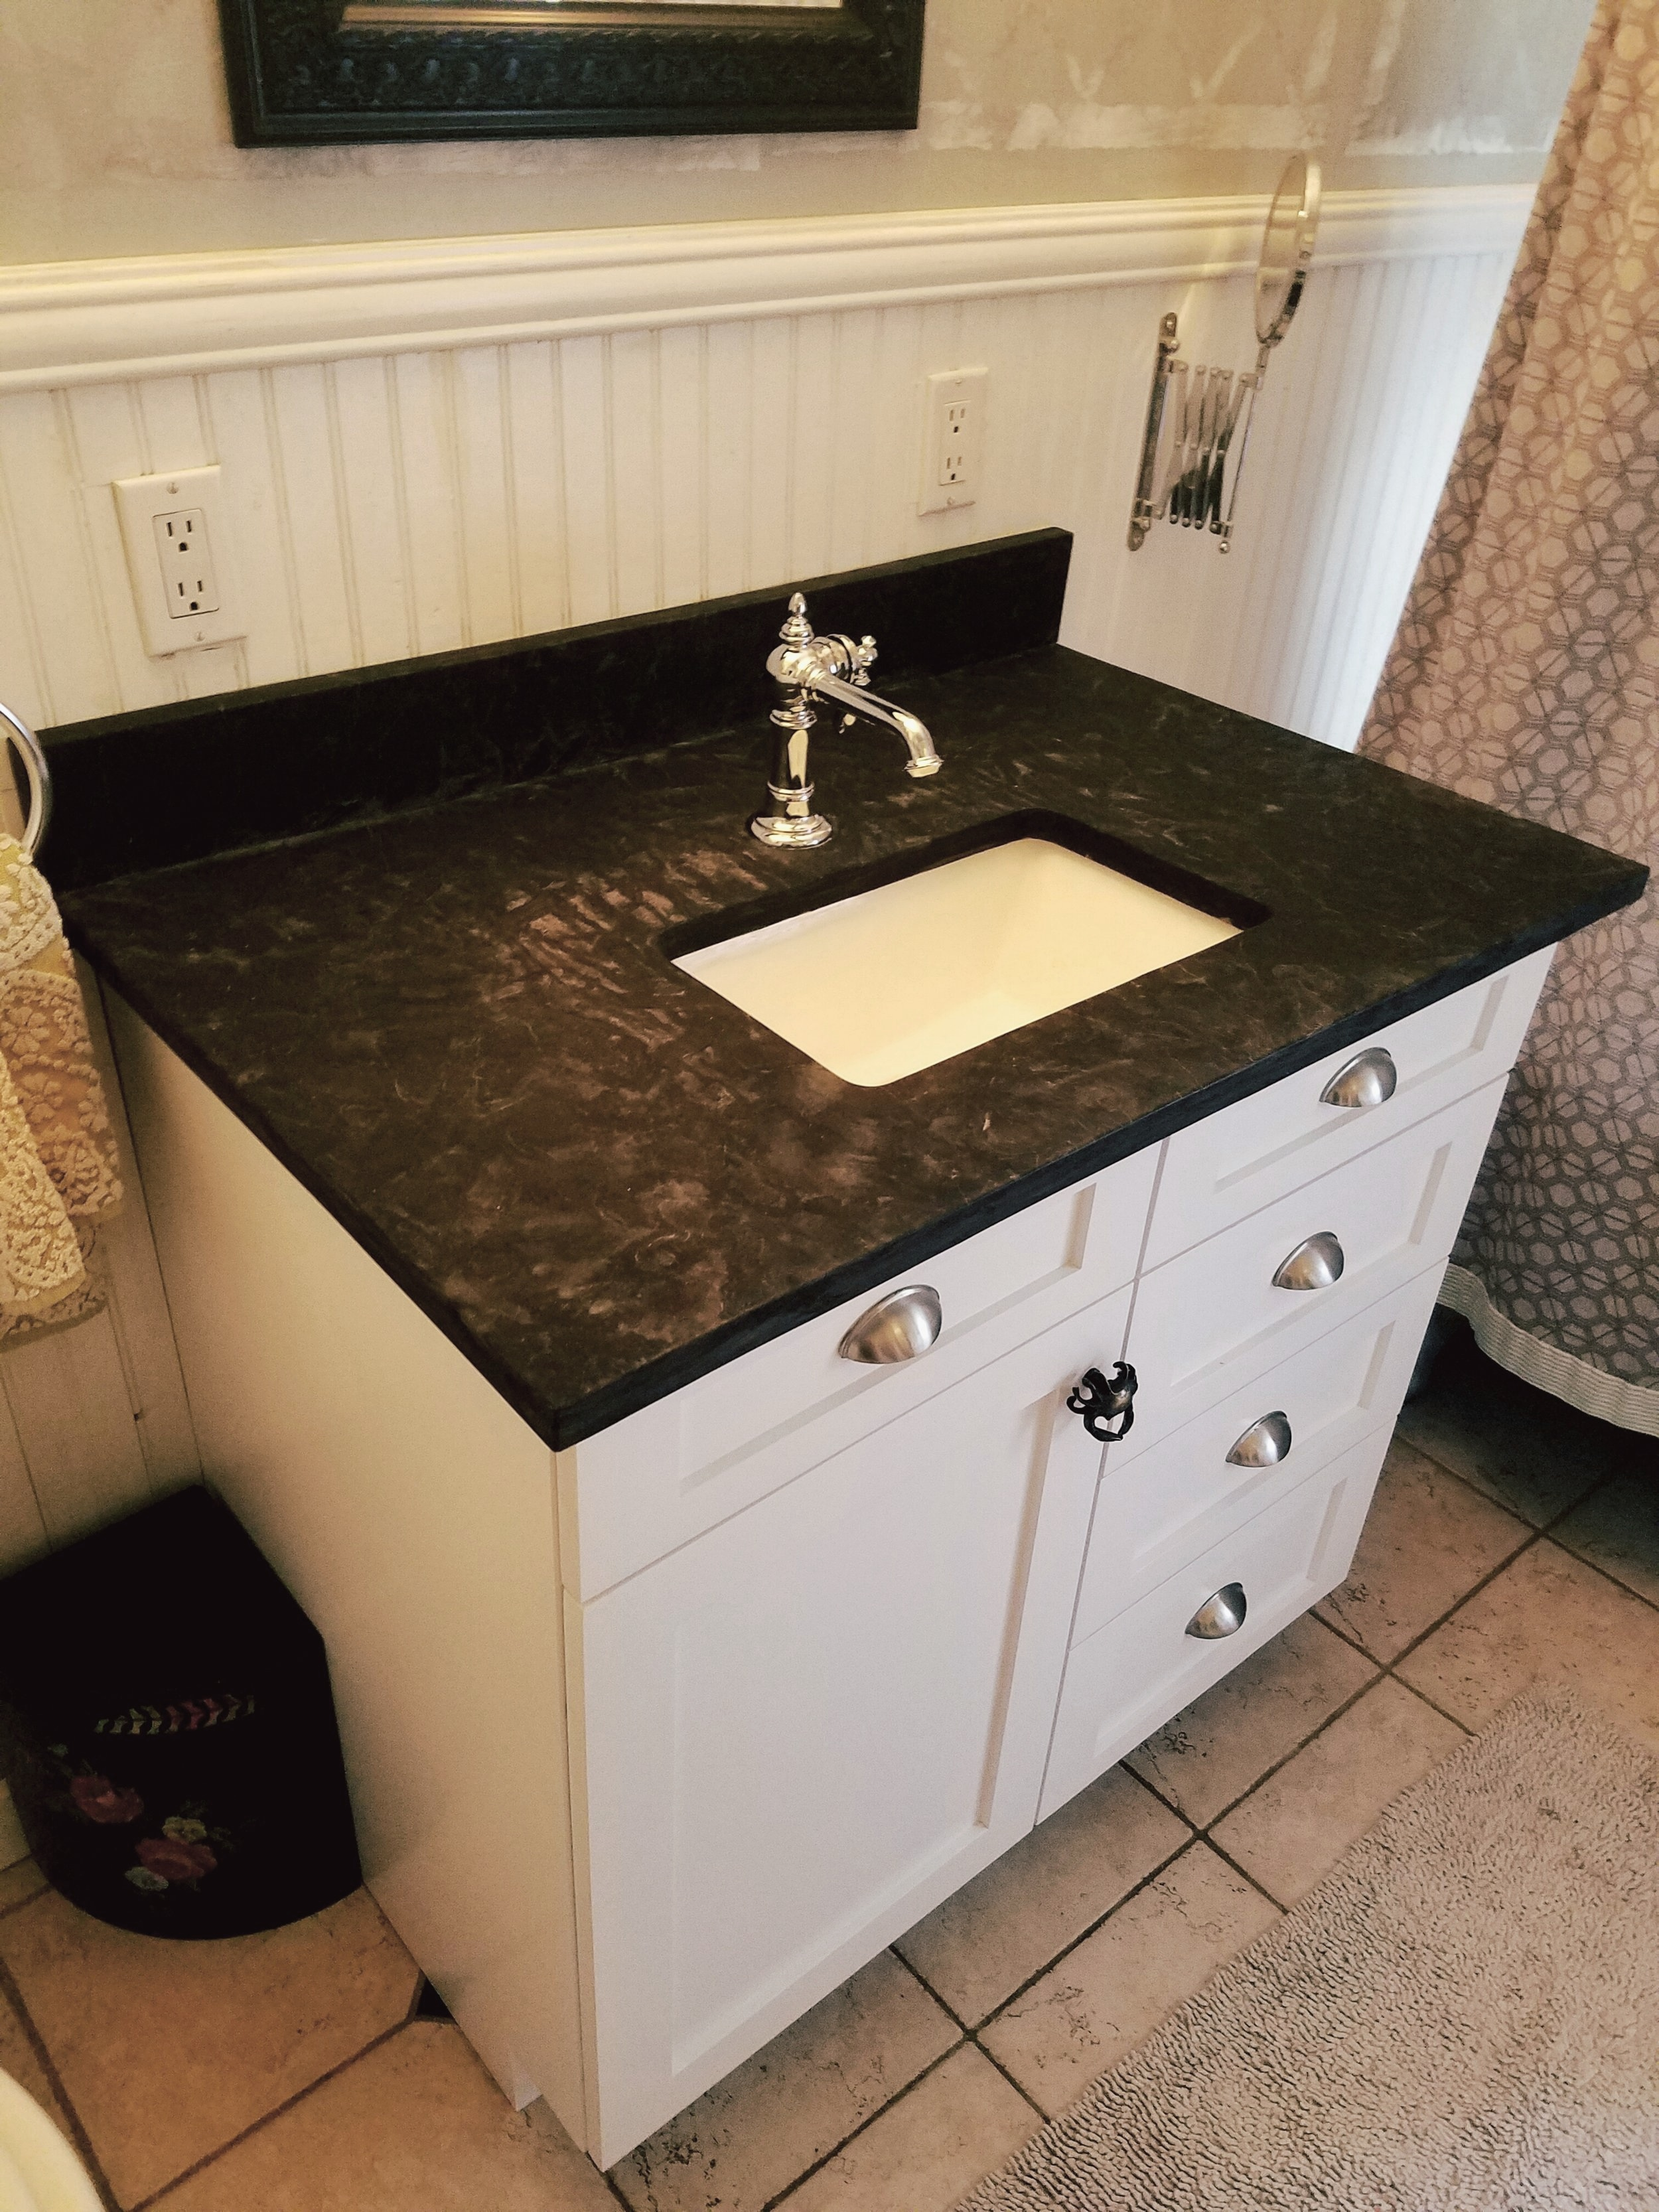 MOLINO CUSTOM BASALT VANITY  * Project was developed by Rebekah in accord with Builder Boy, Inc.